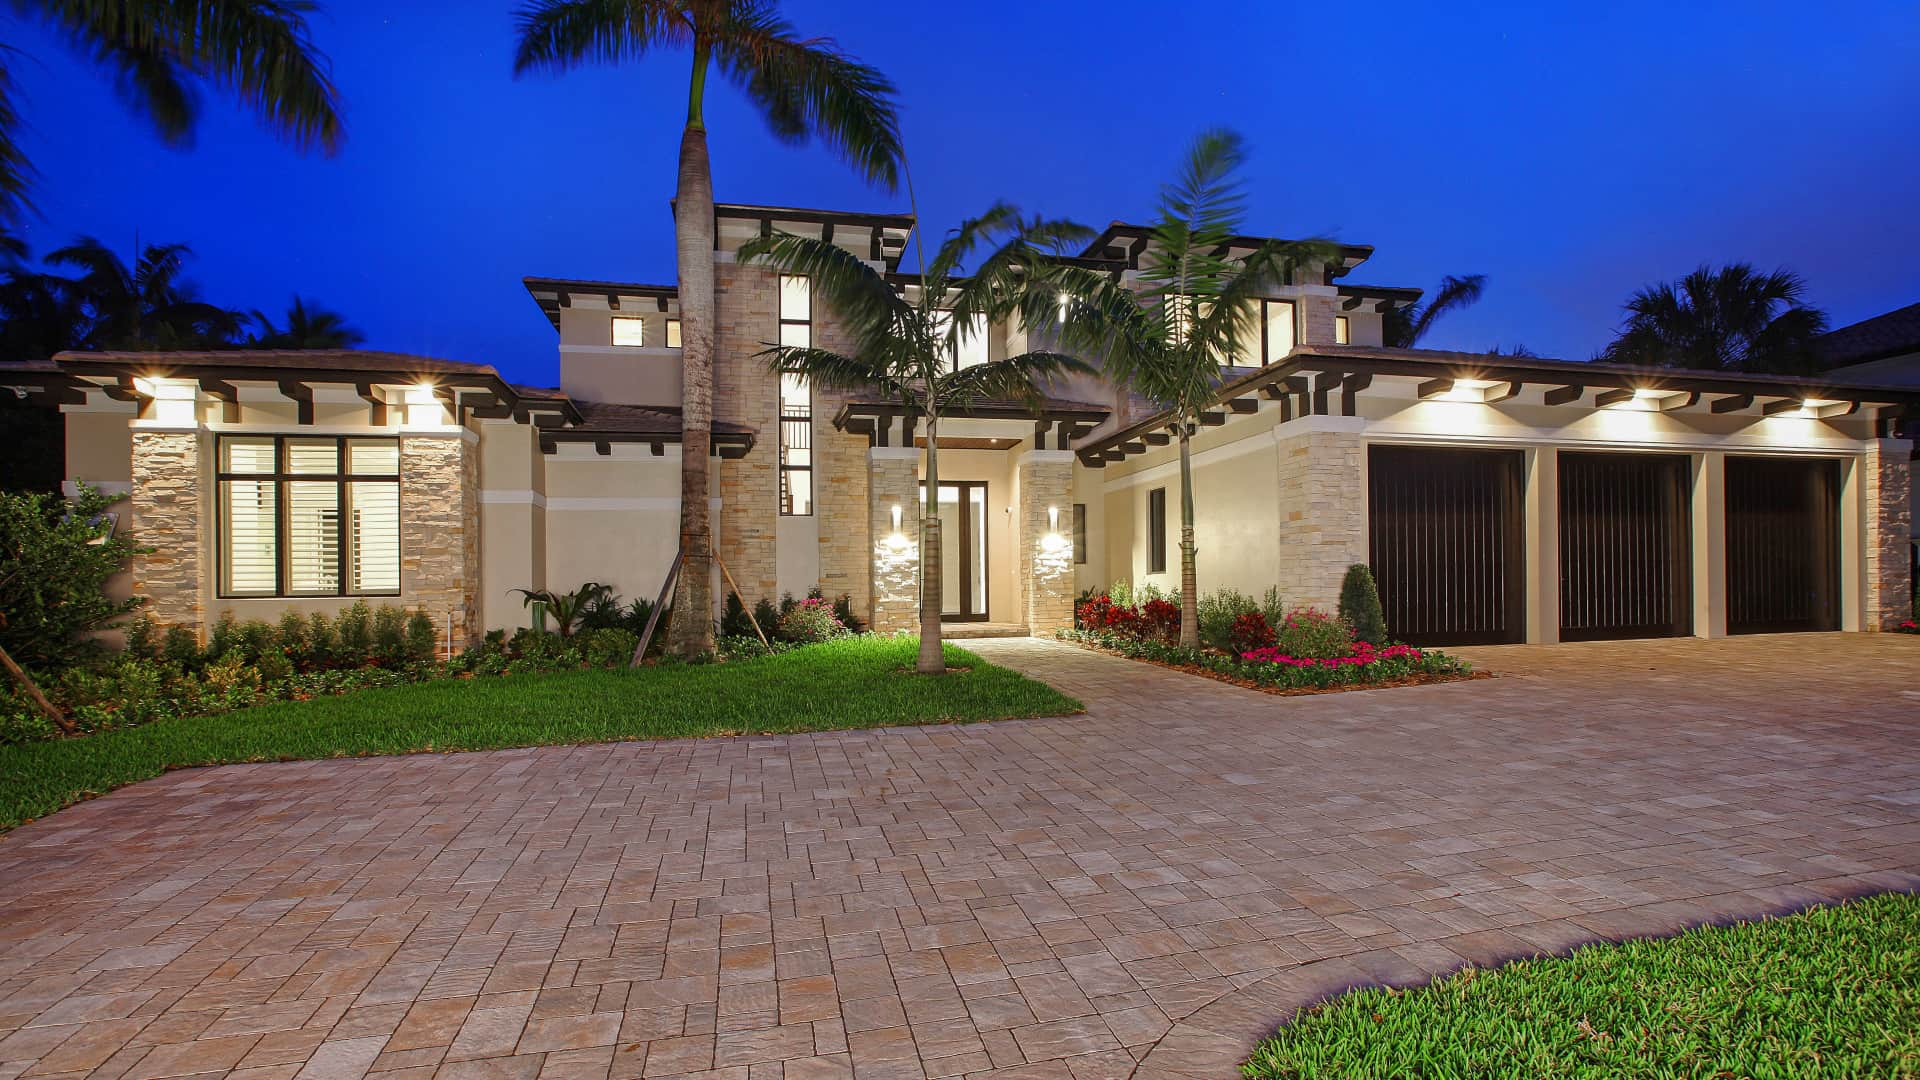 TIPS FOR CHOOSING A LUXURY HOME BUILDER